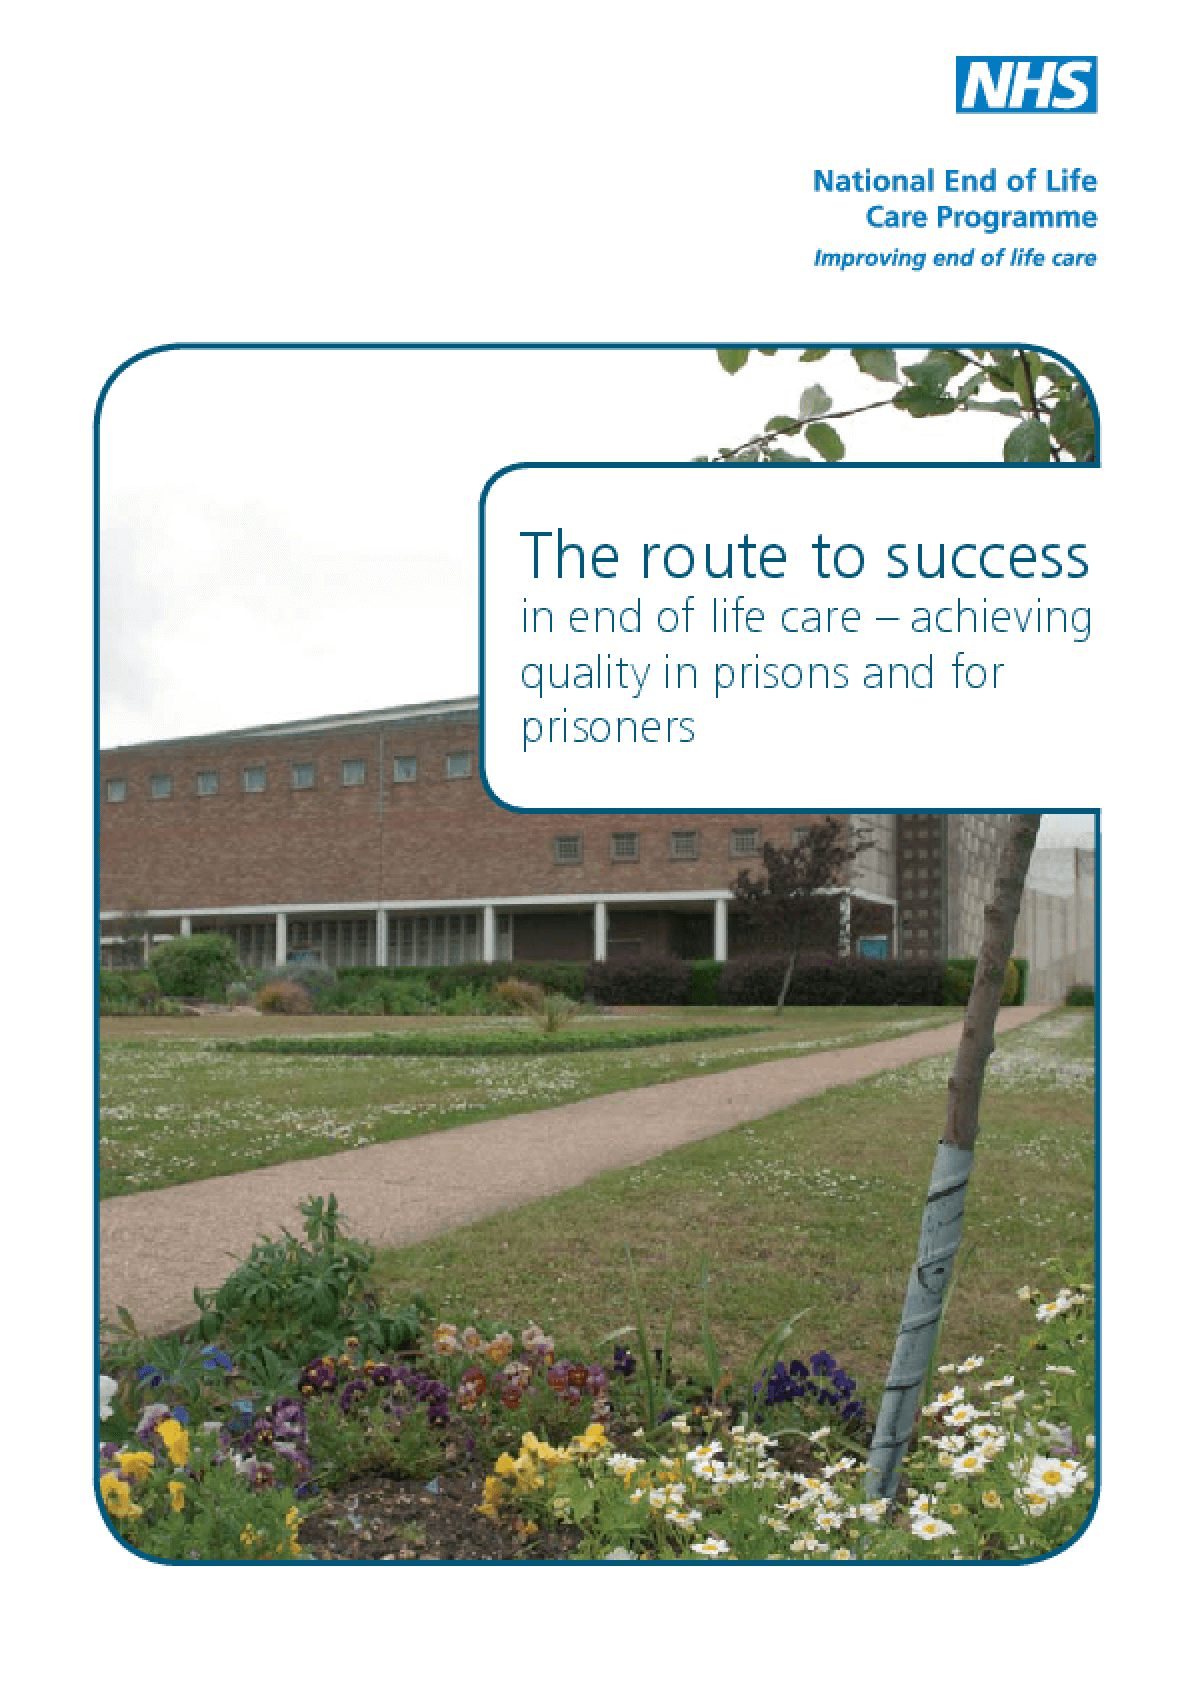 The Route to Success in End-of-Life Care - Achieving Quality in Prisons and for Prisoners